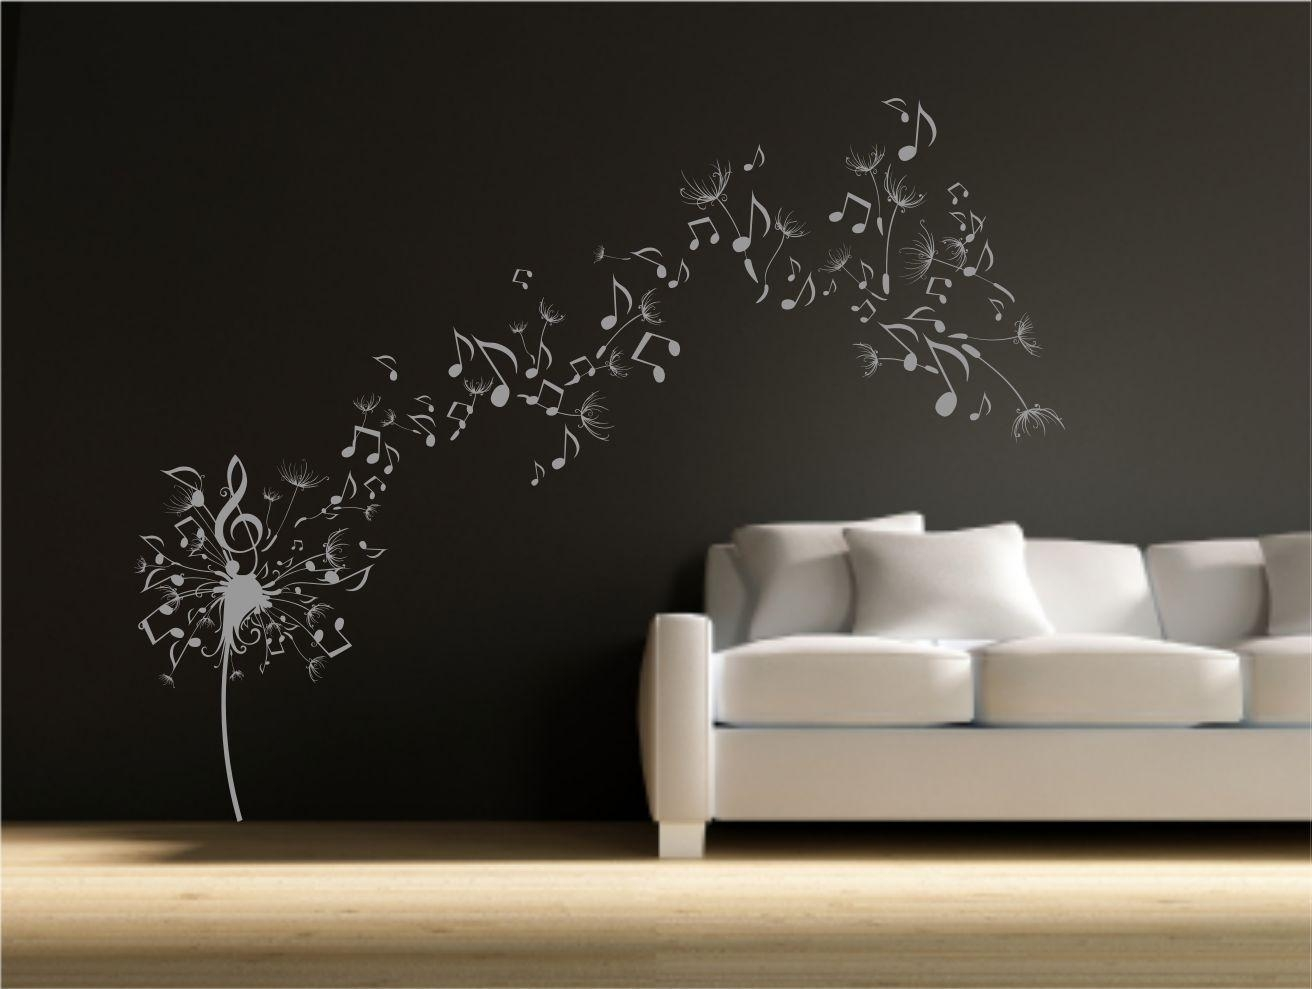 20 photos music note art for walls wall art ideas blowing dandelions uber decals wall decal vinyl decor art sticker for music note art for walls amipublicfo Image collections